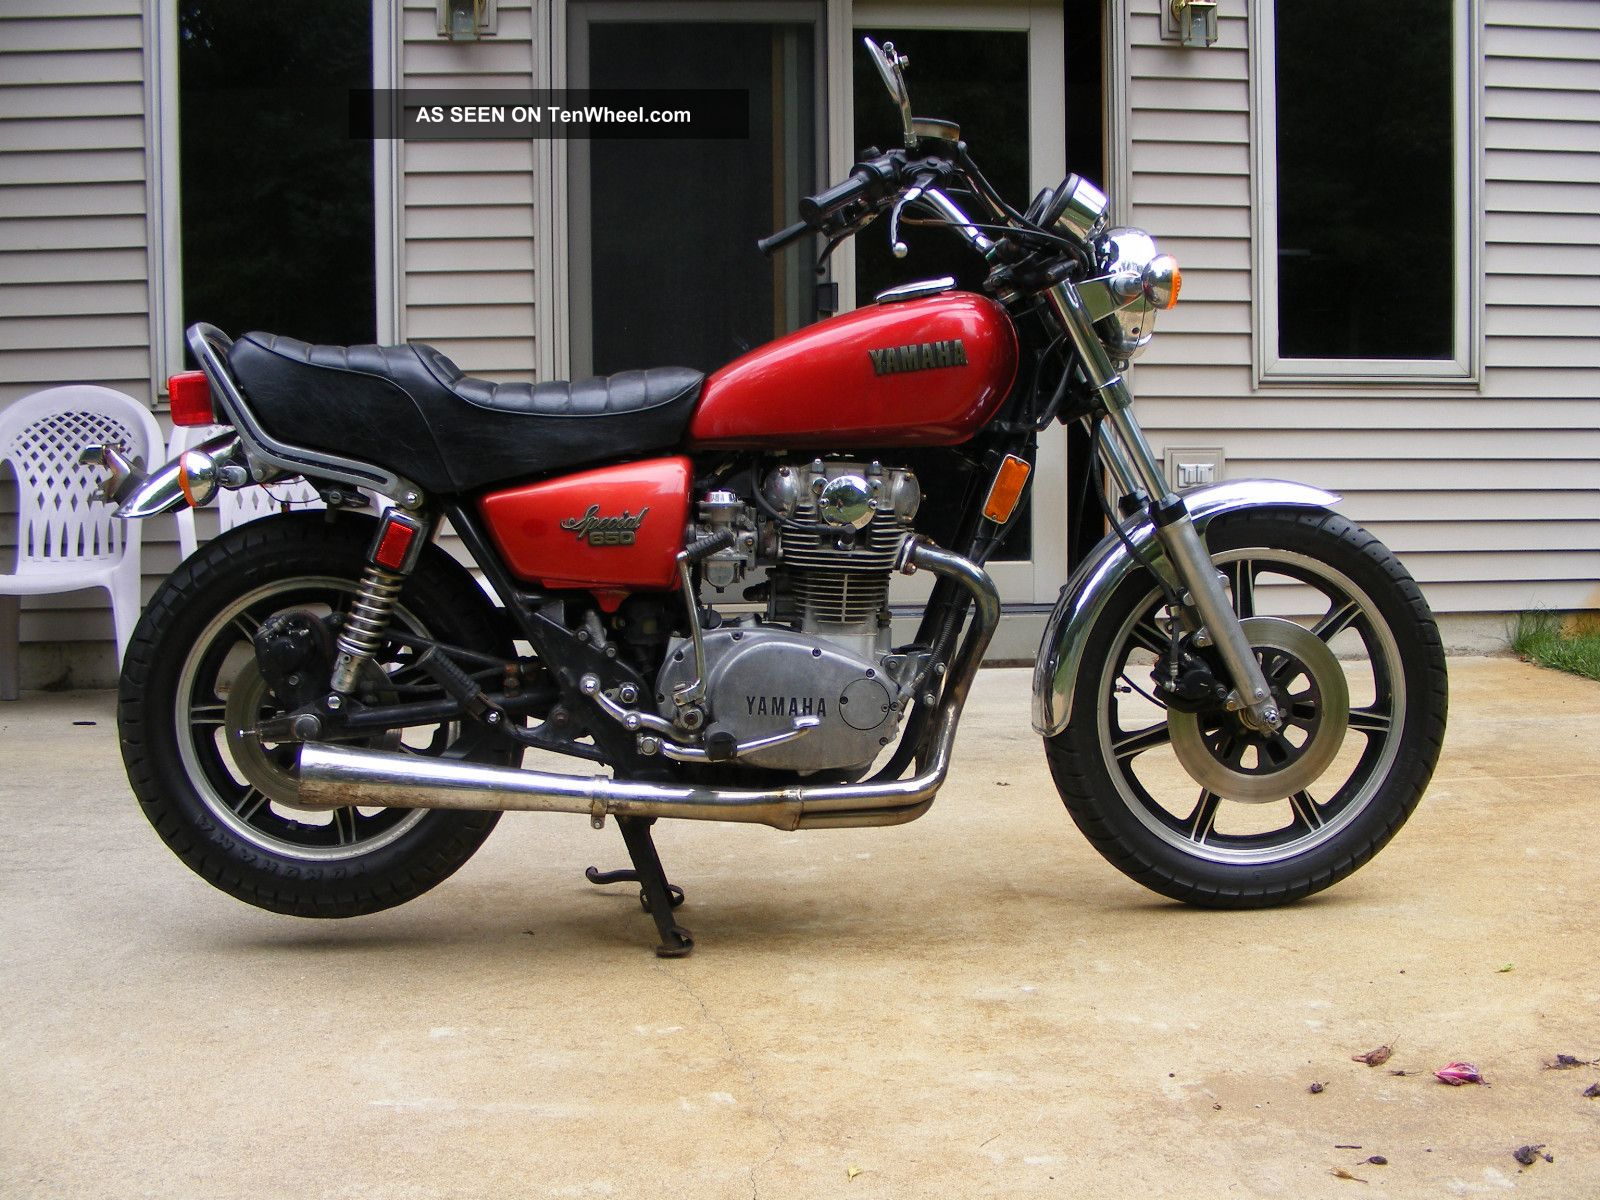 1980 Yamaha 650 Special Wiring Diagram Will Be A Thing Xj650 Xs650 Service Manual Gettpals Classic